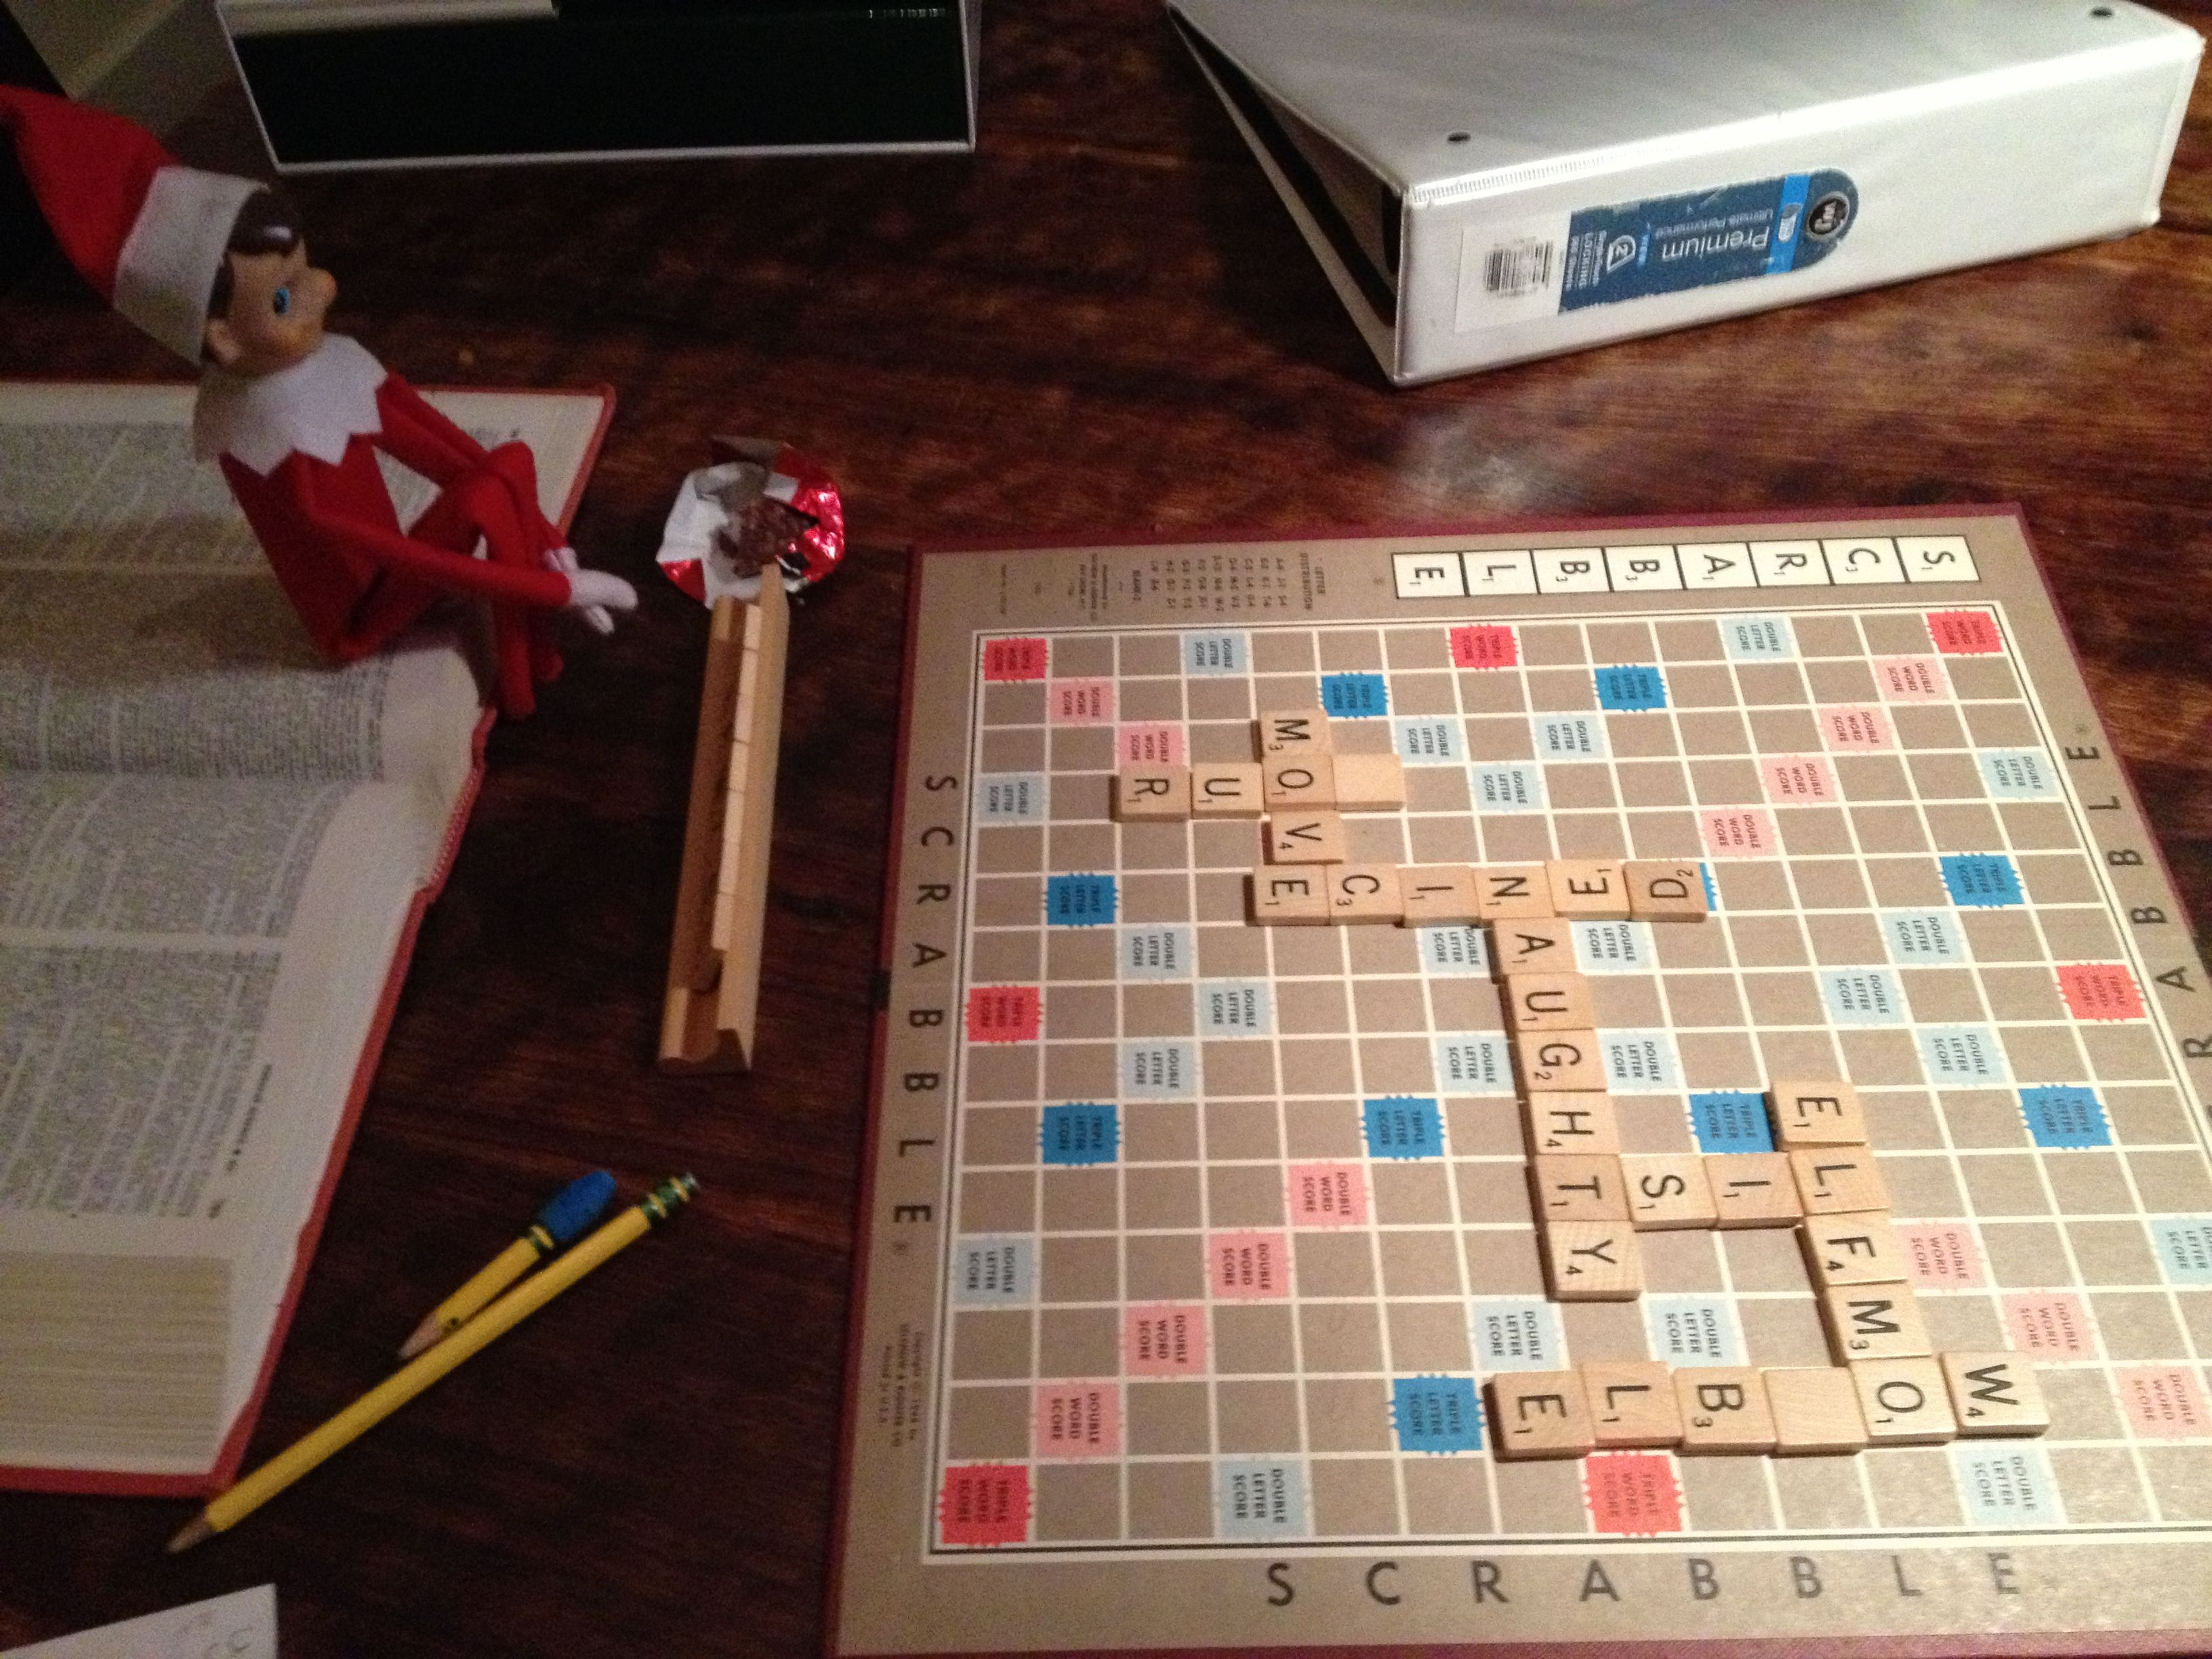 ELFMO DAY ONE (12.18.12)  SCRABBLE MESSAGING